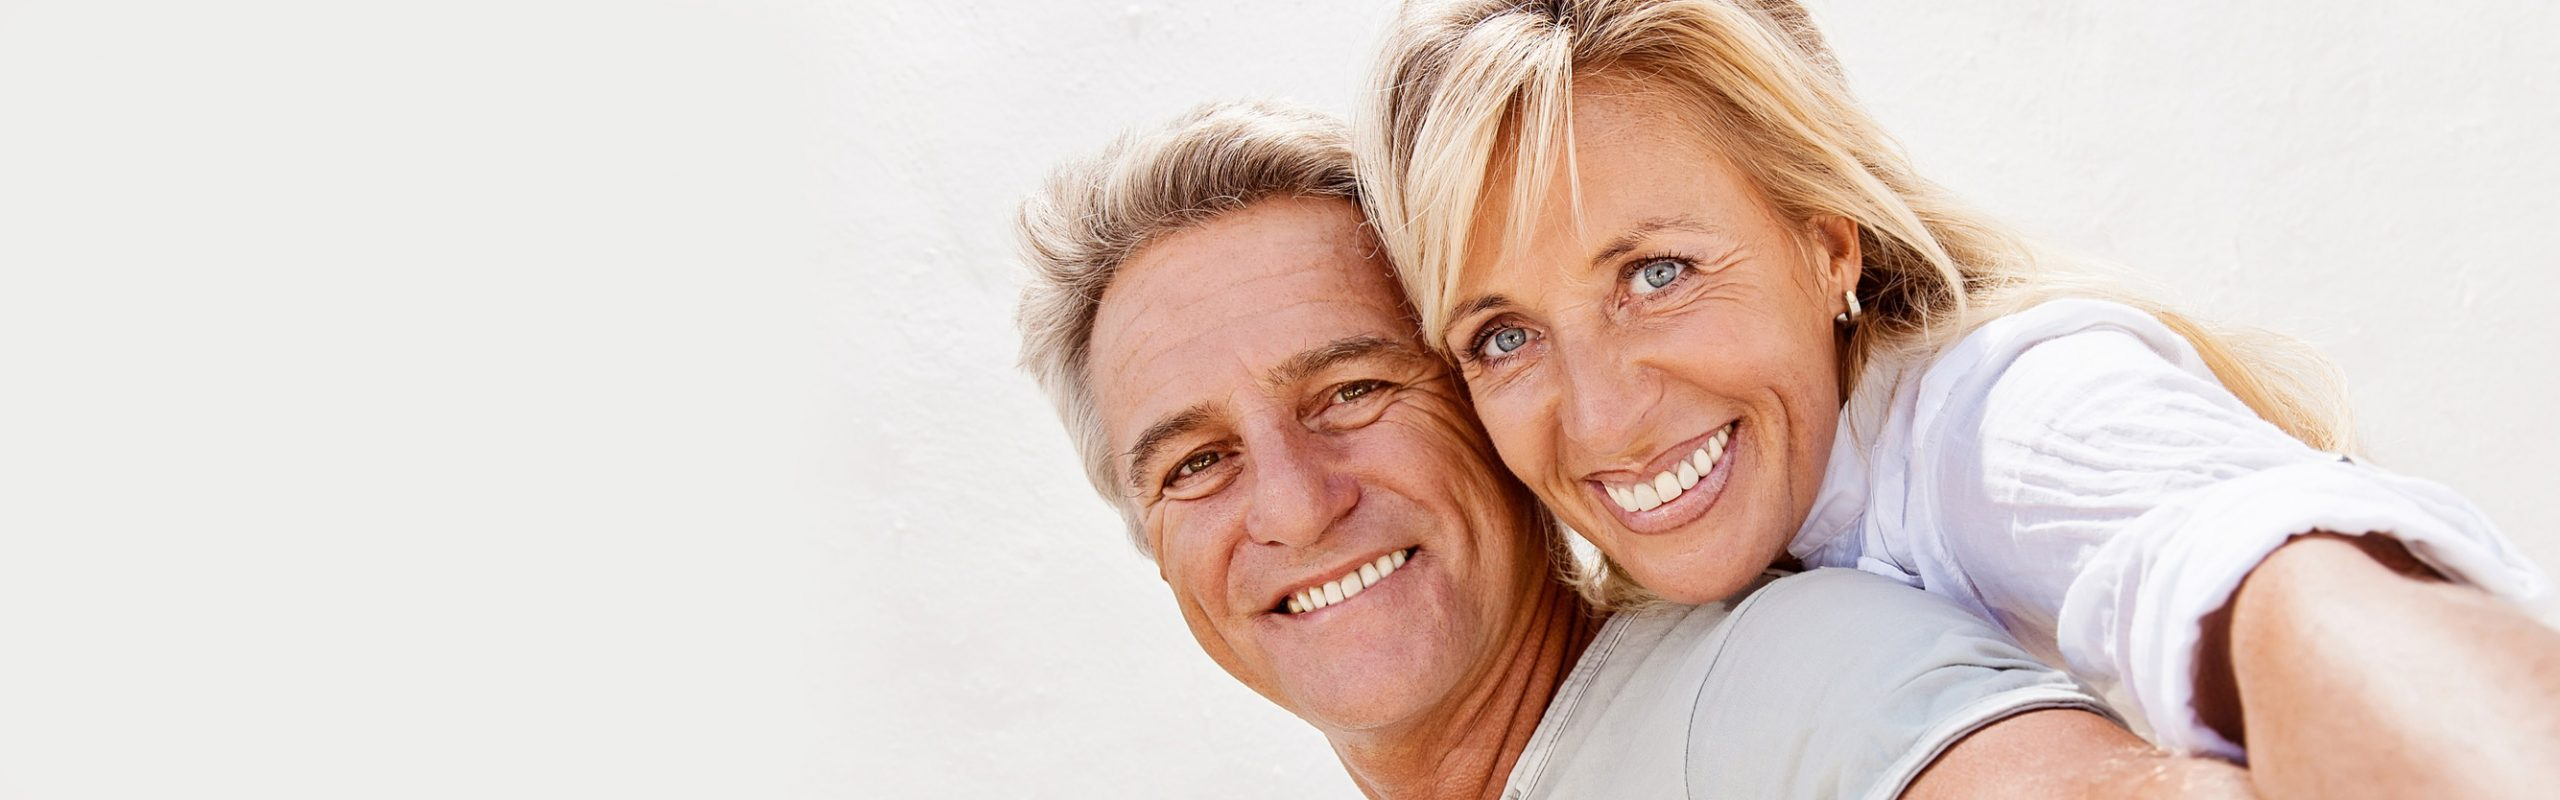 Restore your oral health with dental implants in Kingston, PA